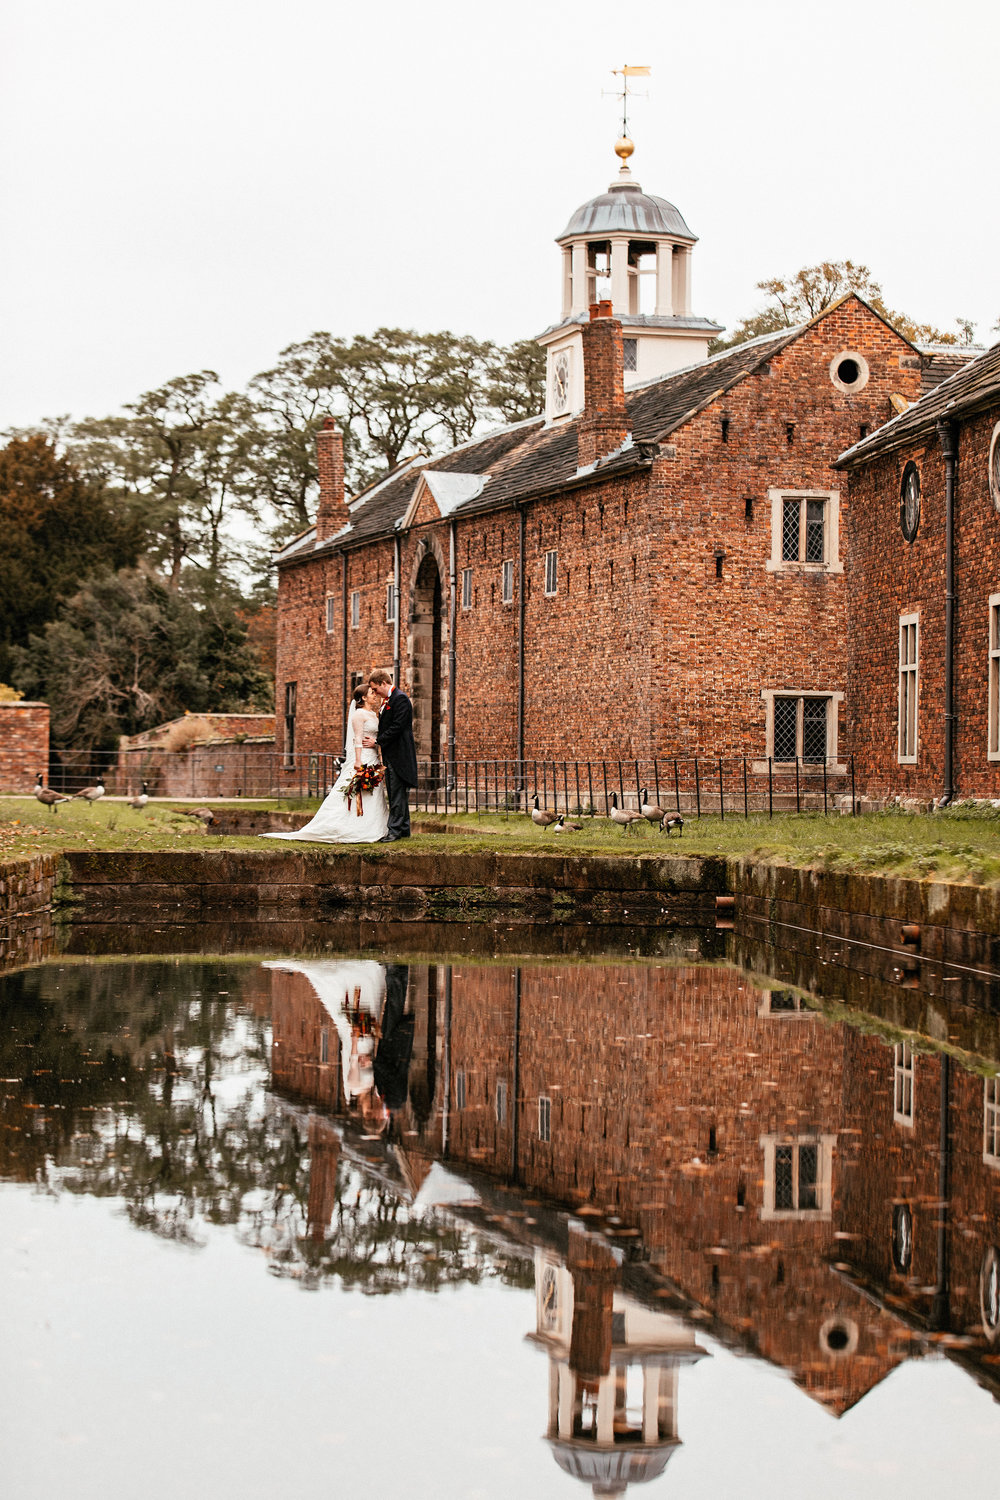 Dunham-Massey-Wedding-Photographer-93.jpg